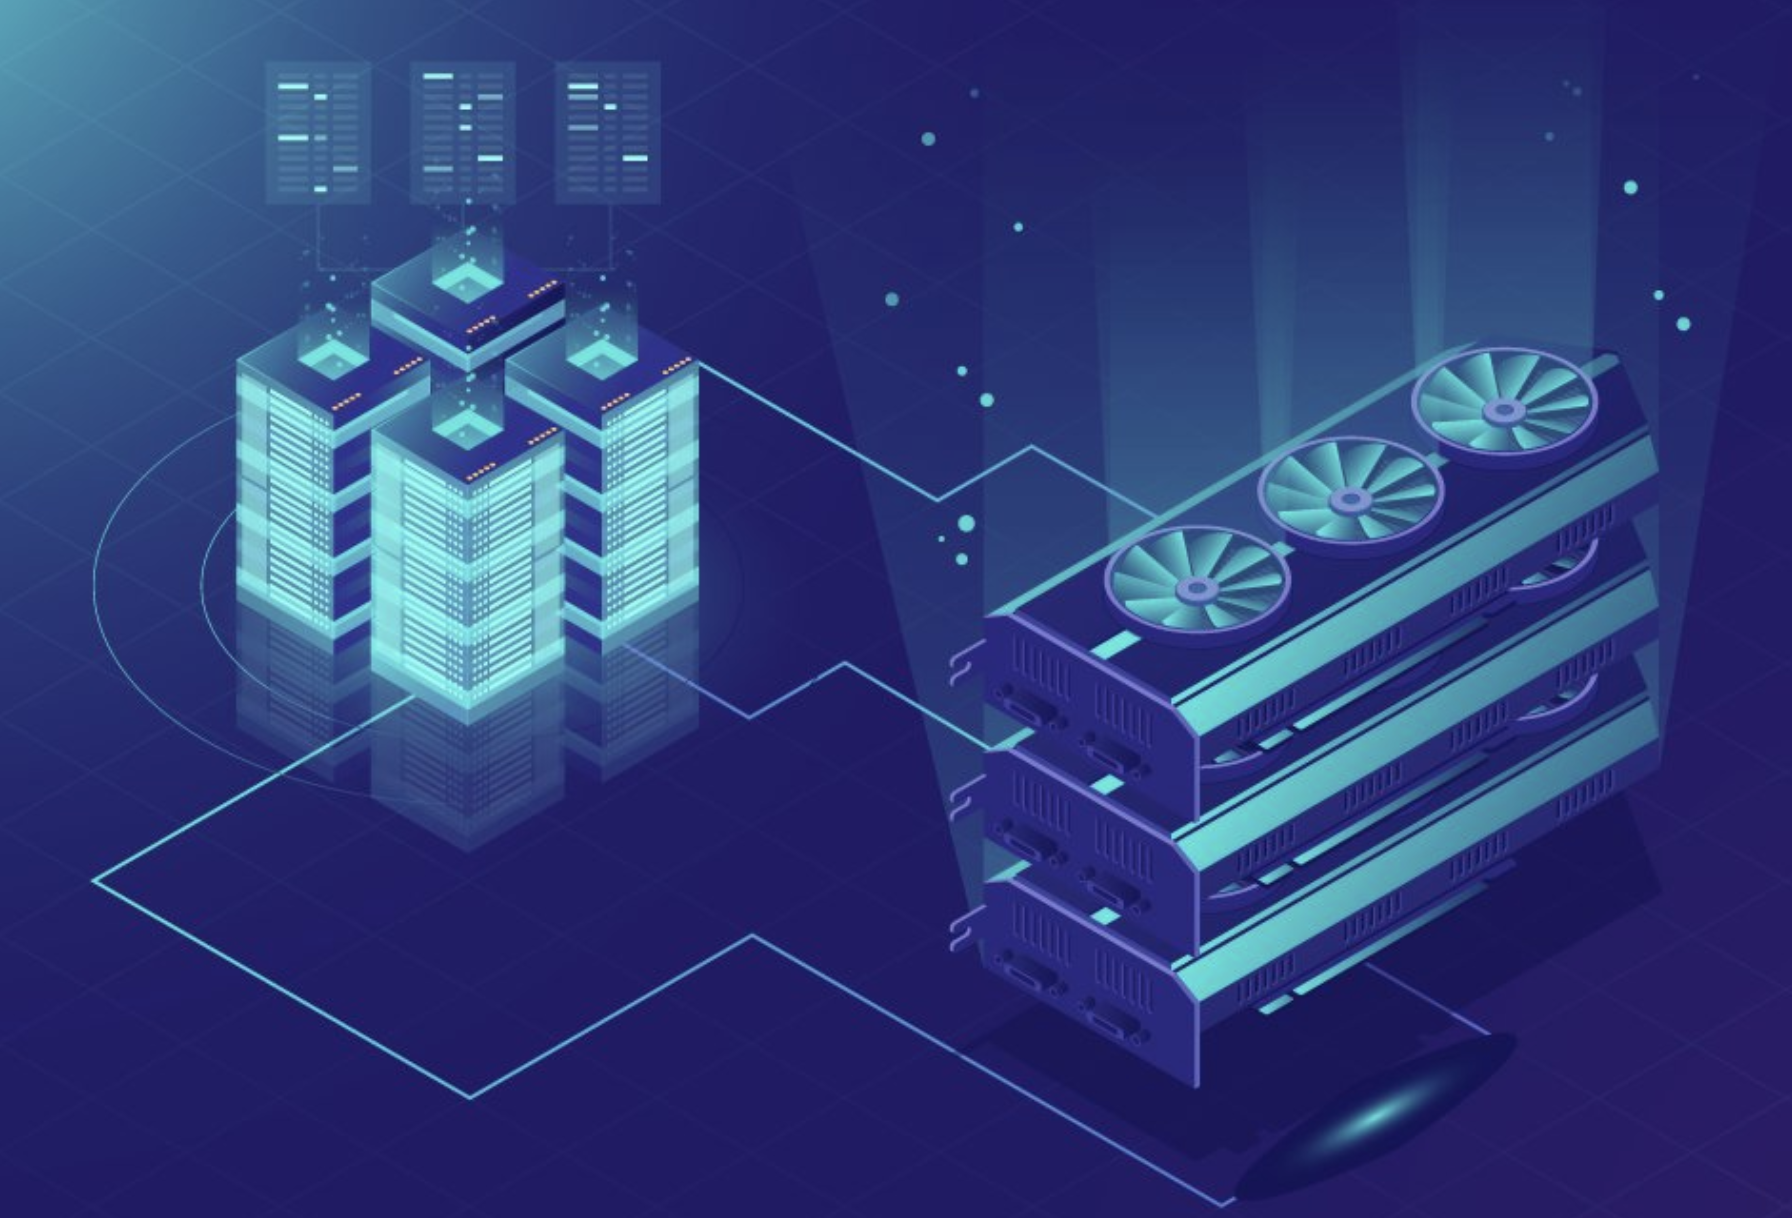 Vectordash's cloud gaming service brings crypto-miners a new revenue